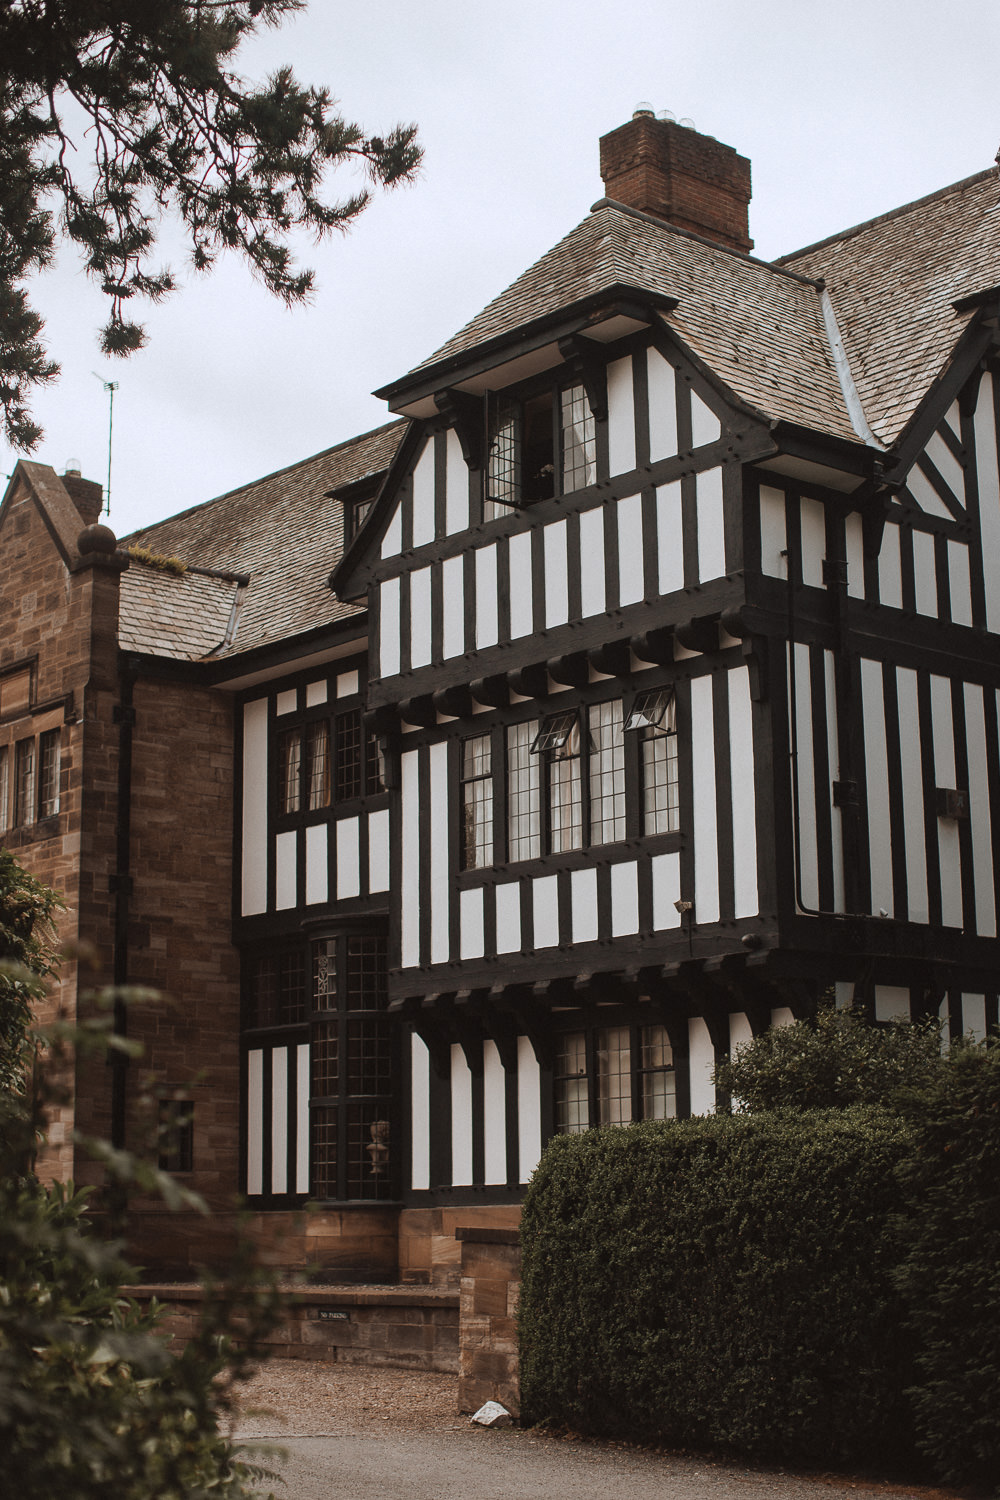 The front of Inglewood Manor, Cheshire